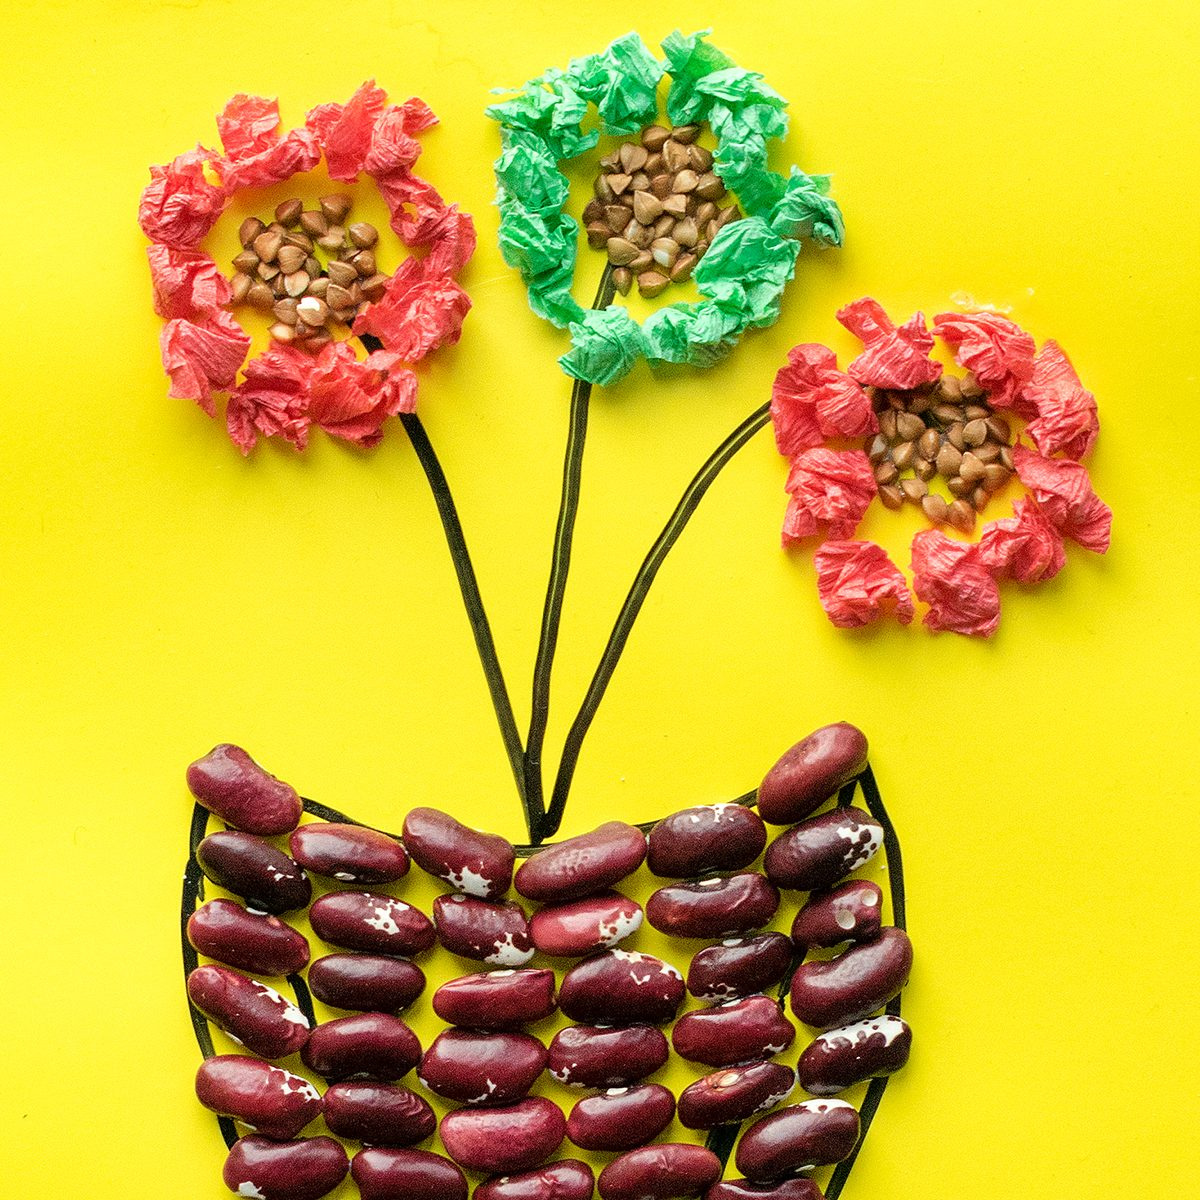 flower in pot from cereals, beans, dried leaves and colored paper Children's seasonal crafts from natural materials. Original children's art project. DIY creative handmade concept.